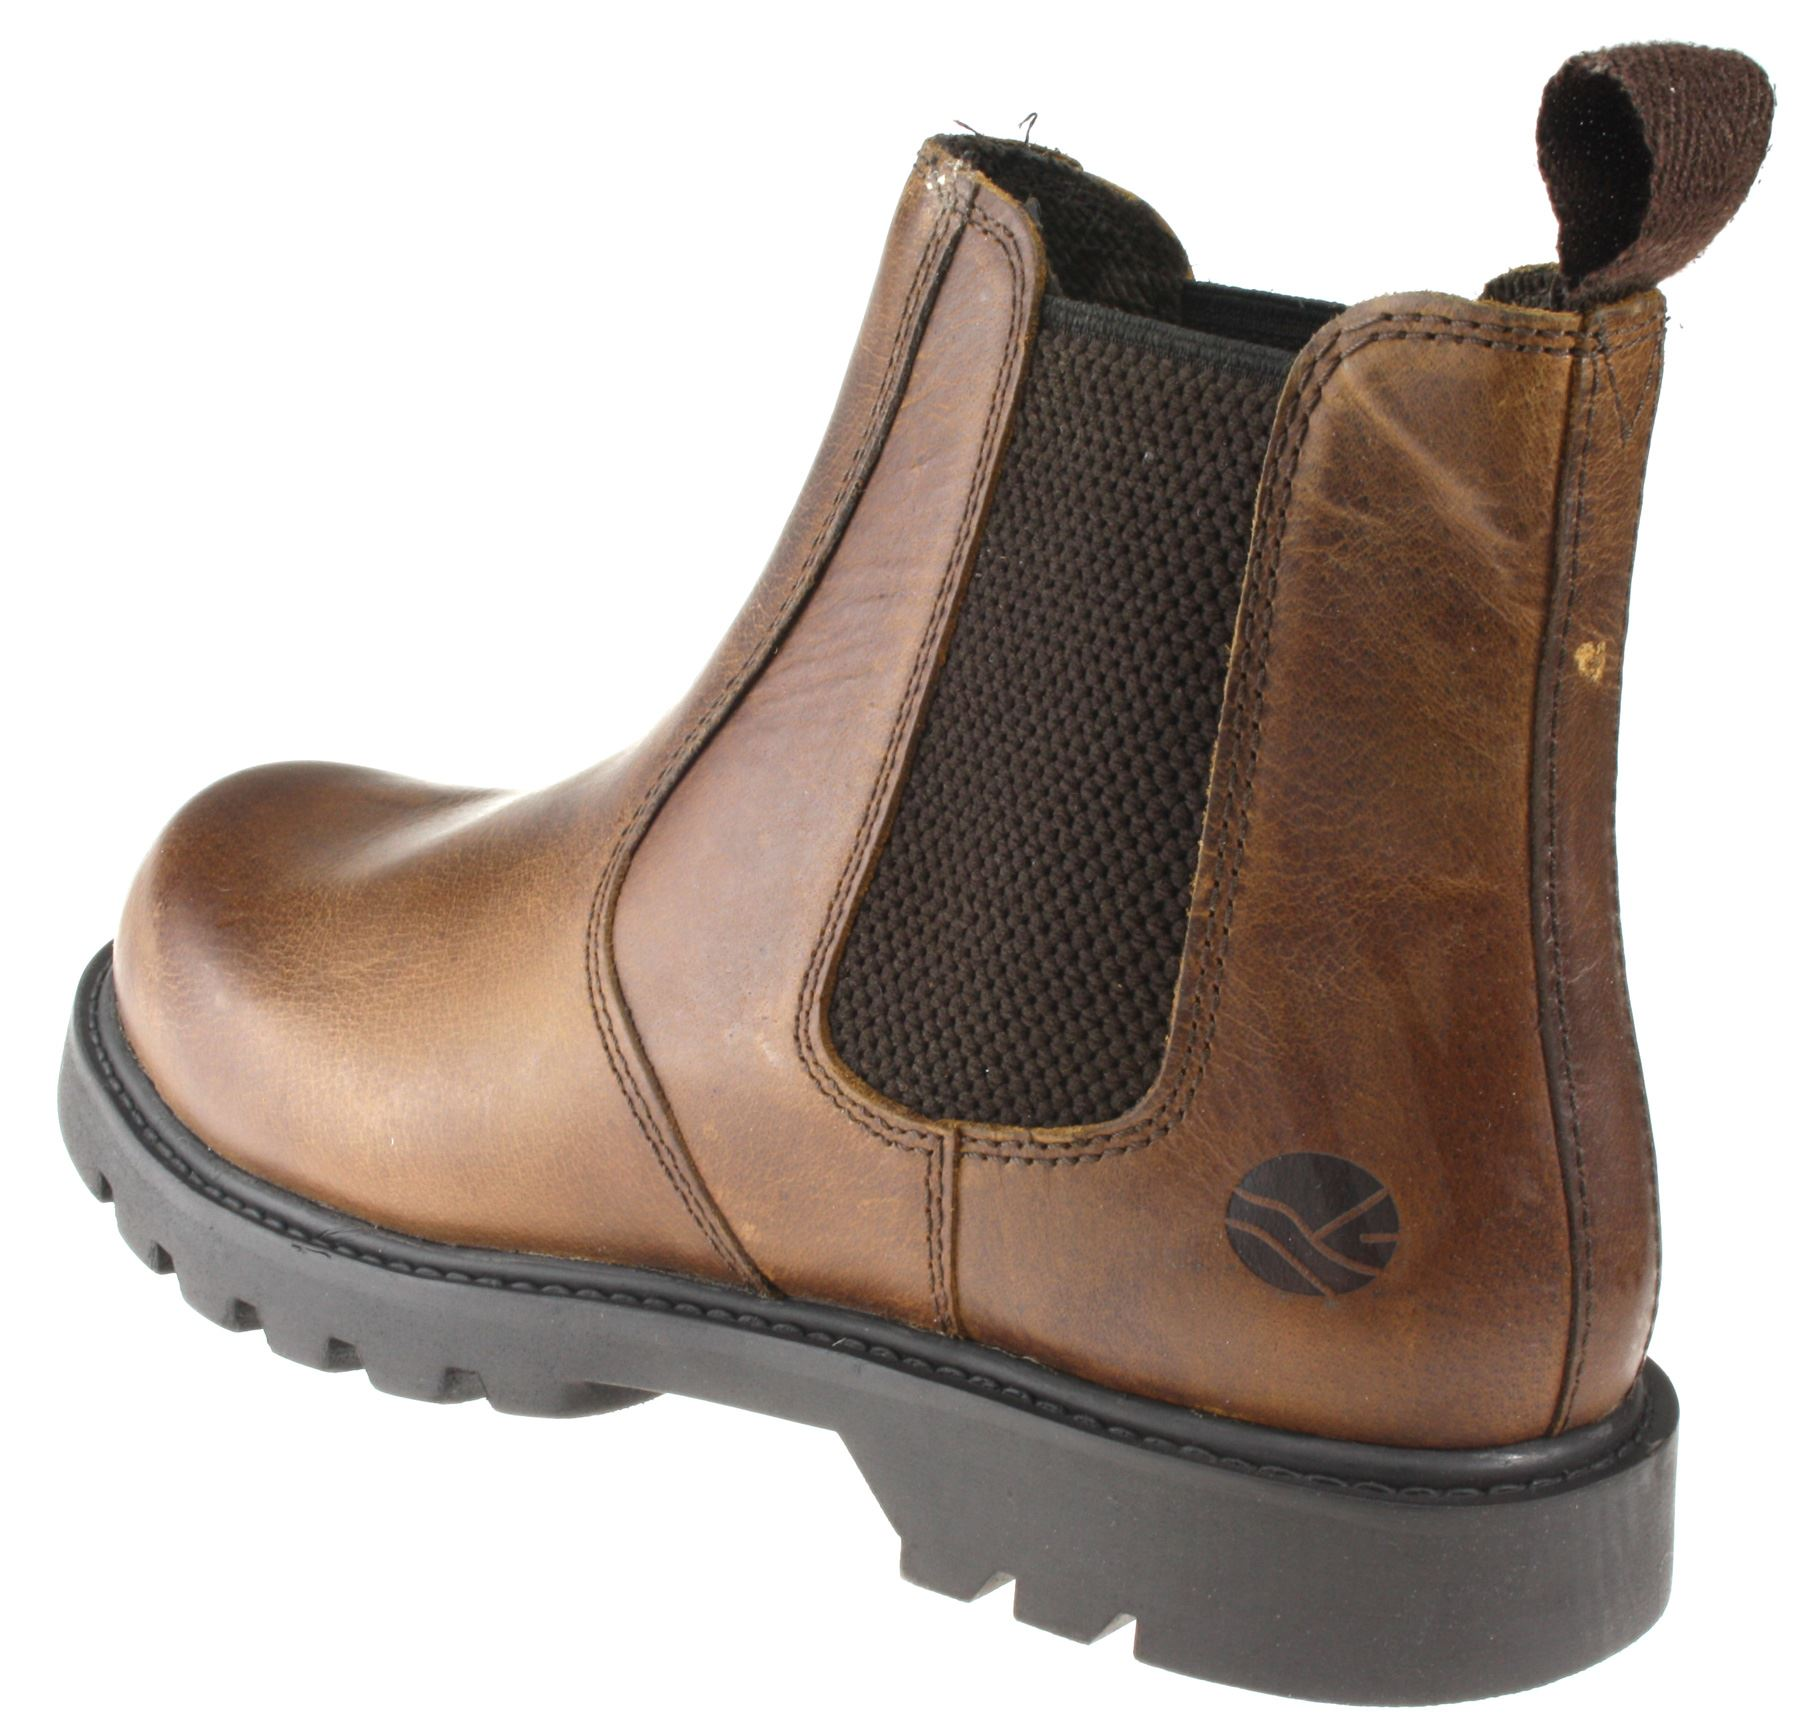 Oaktrak Rocksley 2 Mens Tan Brown Chelsea Boots